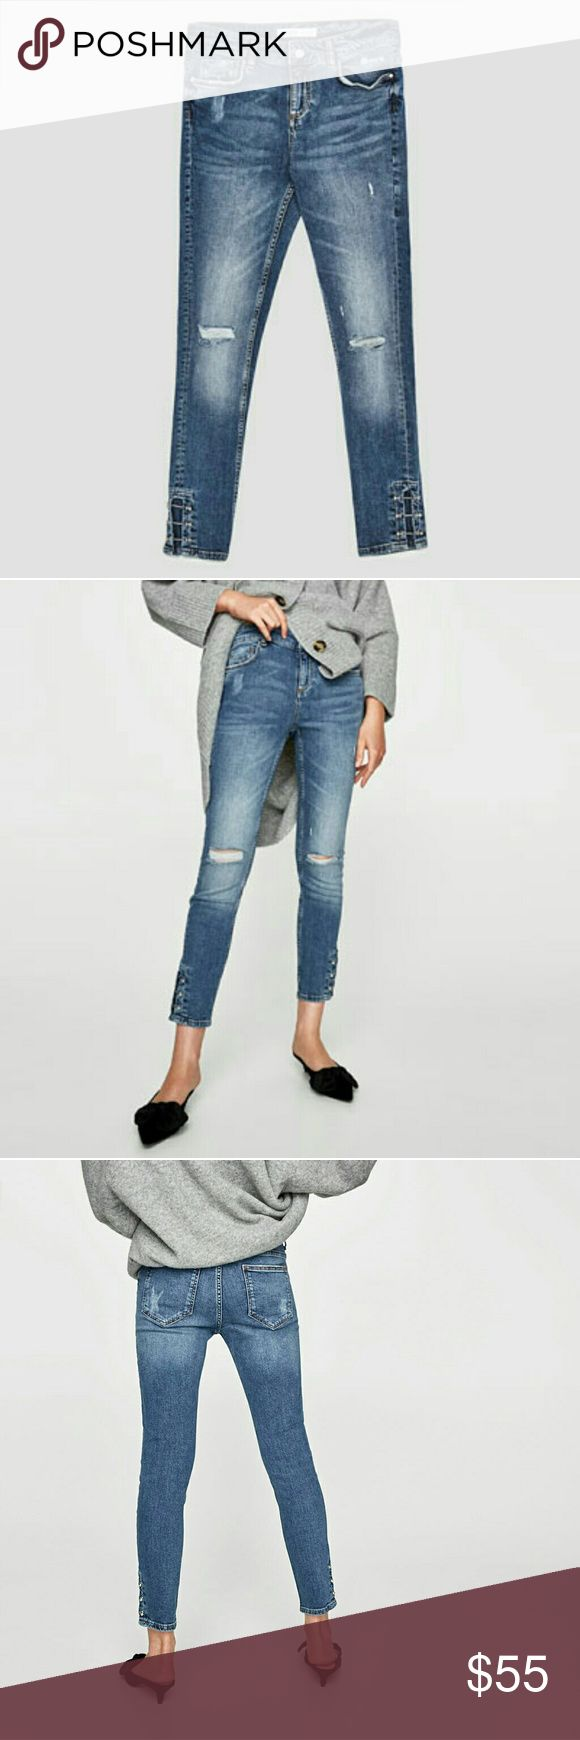 One day sale! Zara jeans(PRICE IS FIRM) Brand new.  Reduced from $55. NO.OFFERS Zara Jeans Skinny